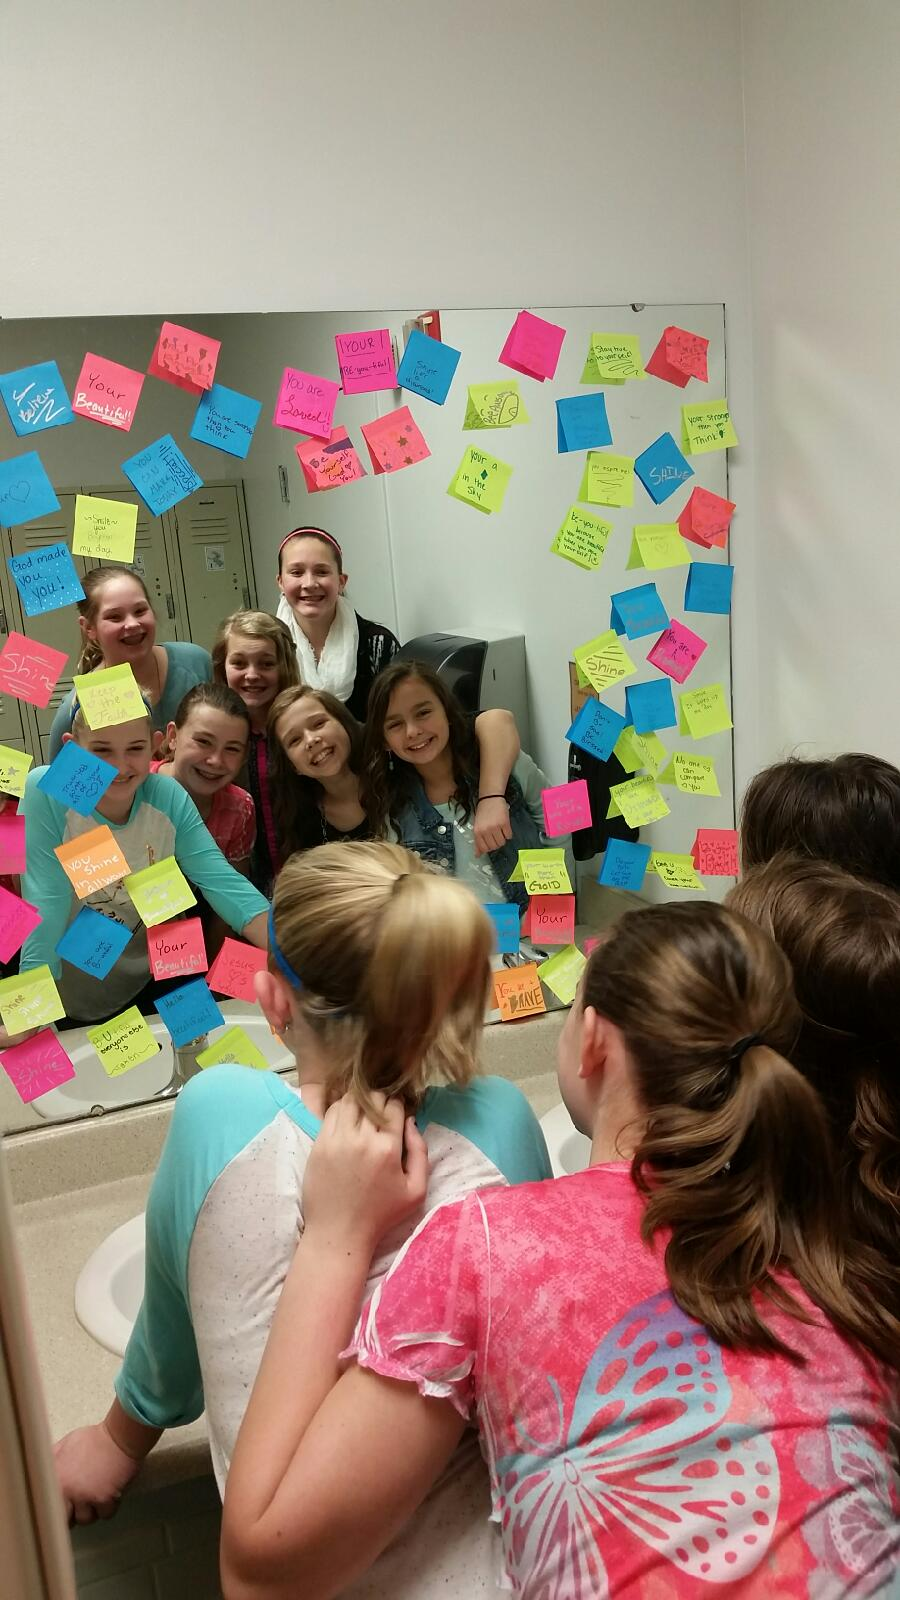 TC 6th grade girls spread encouragement with their Post-it notes